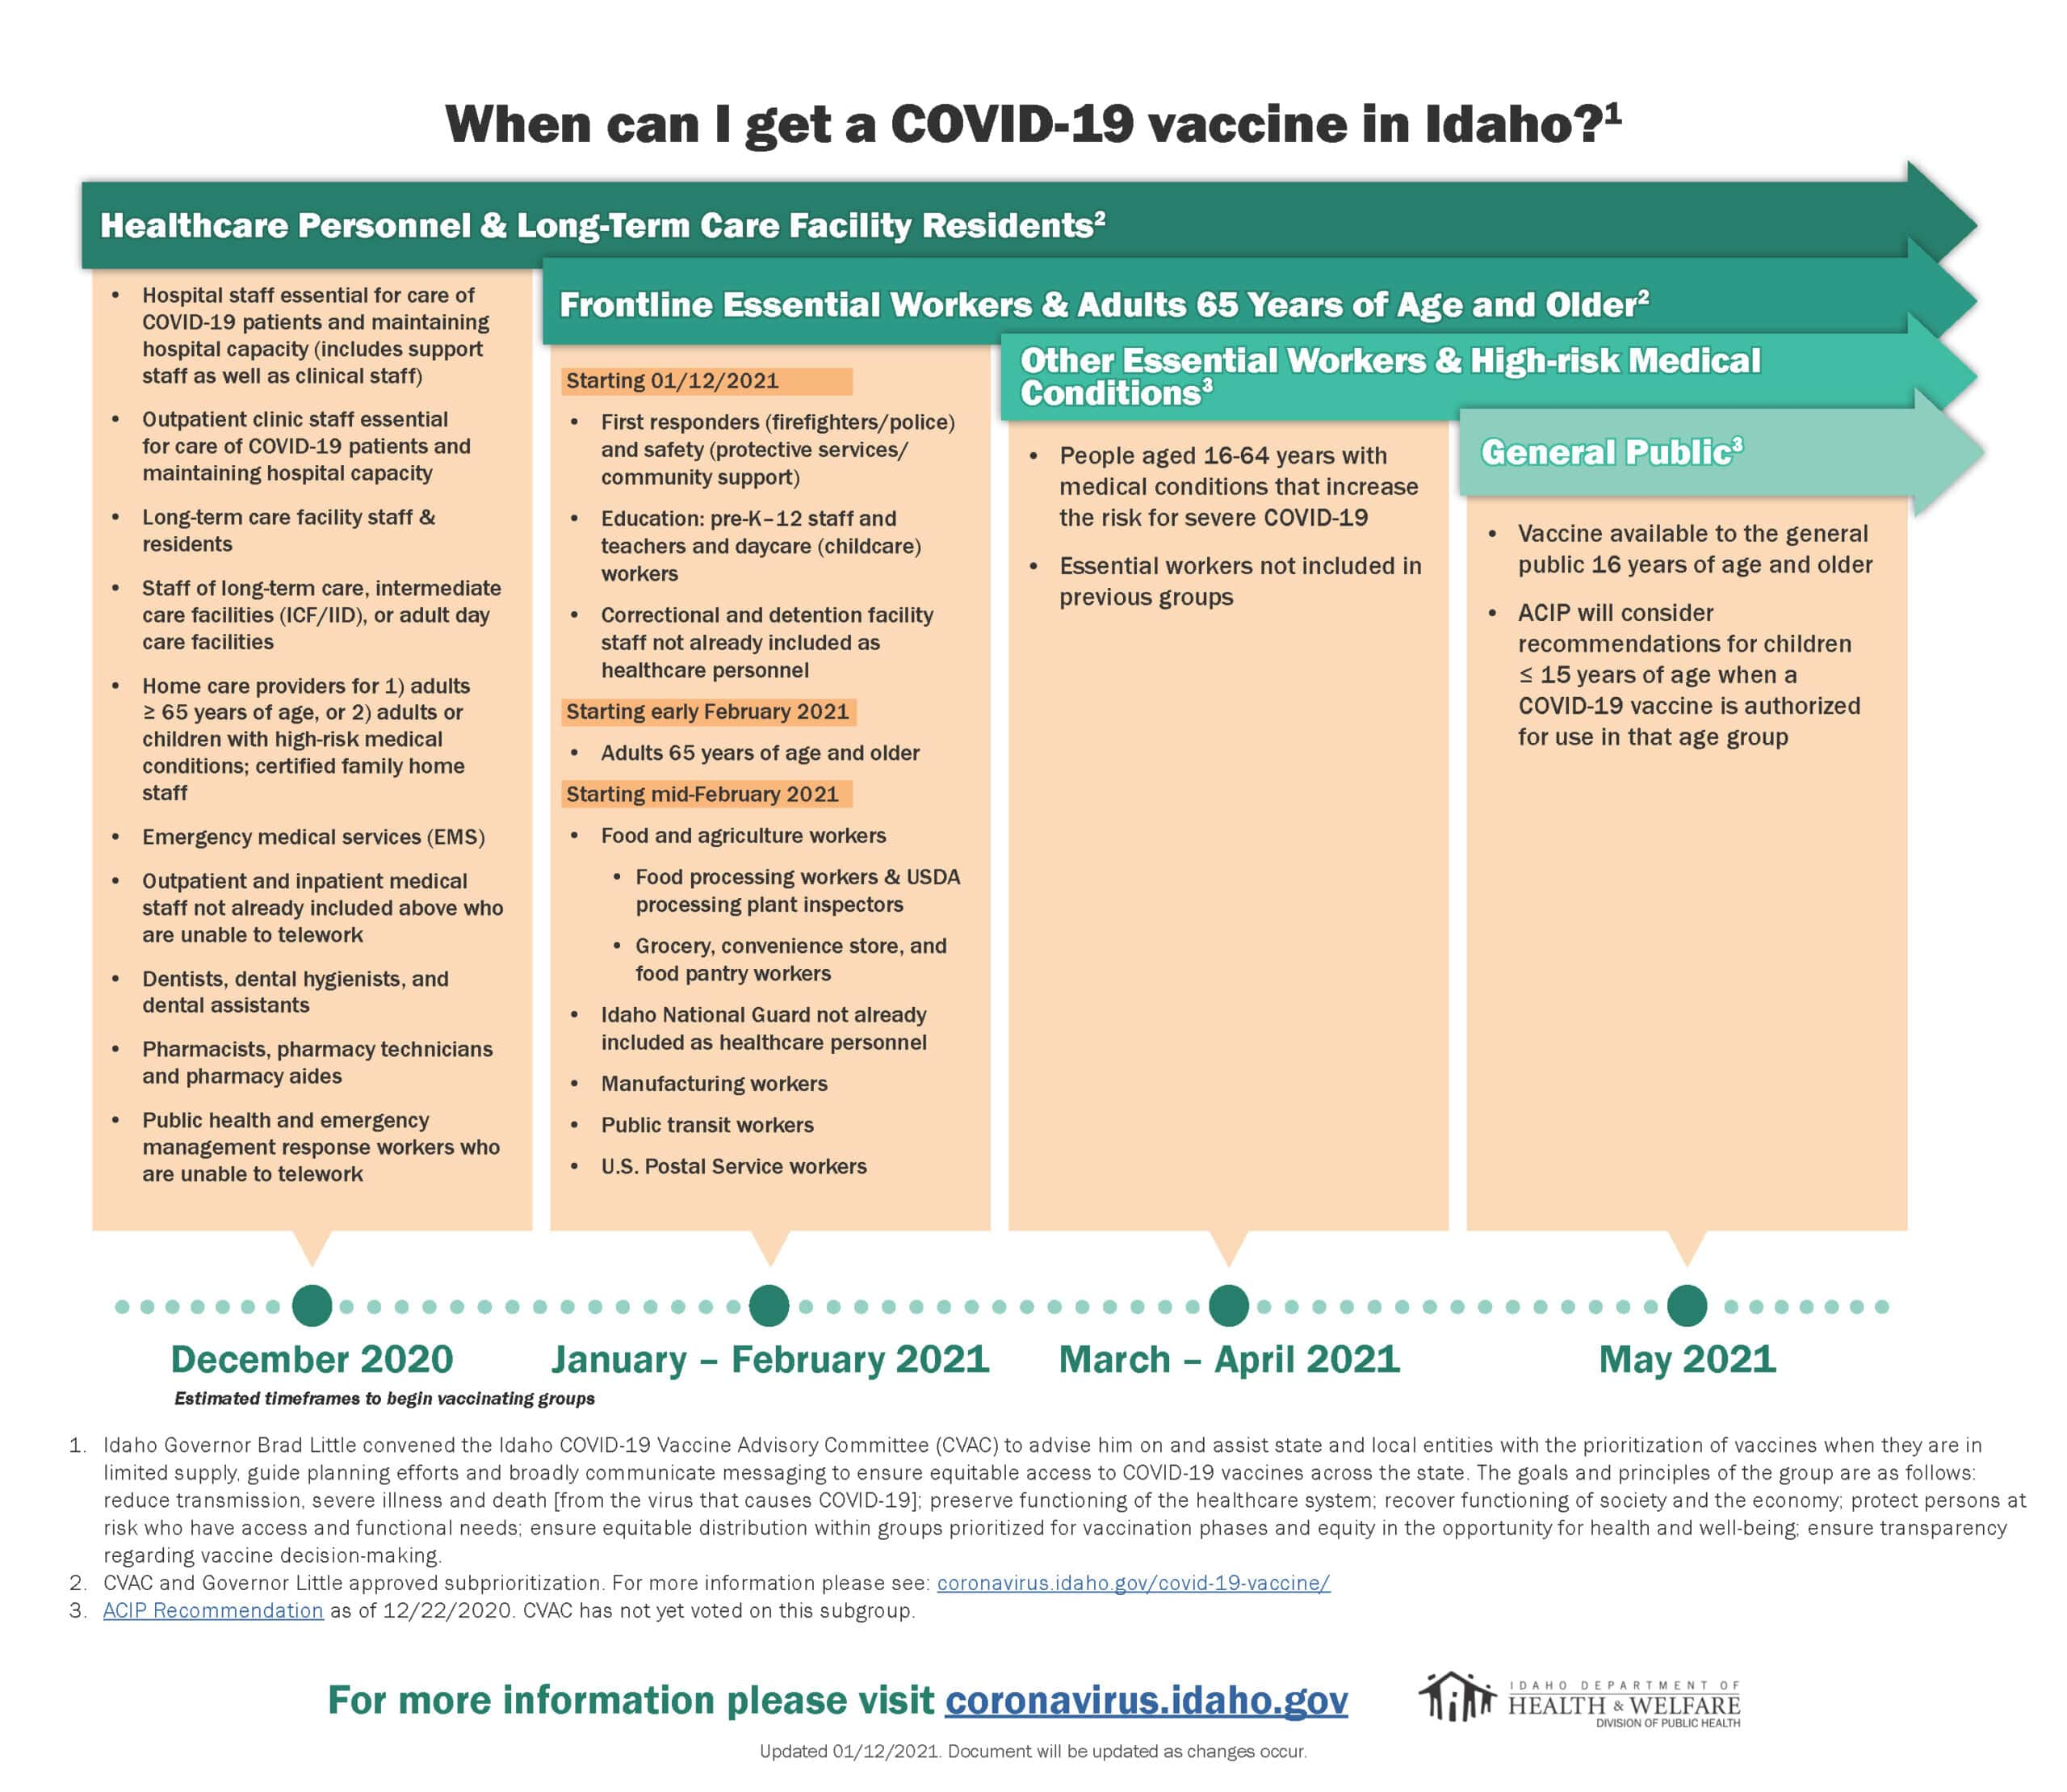 When-can-I-get-a-COVID-vaccine-in-Idaho-011221-5 (1)